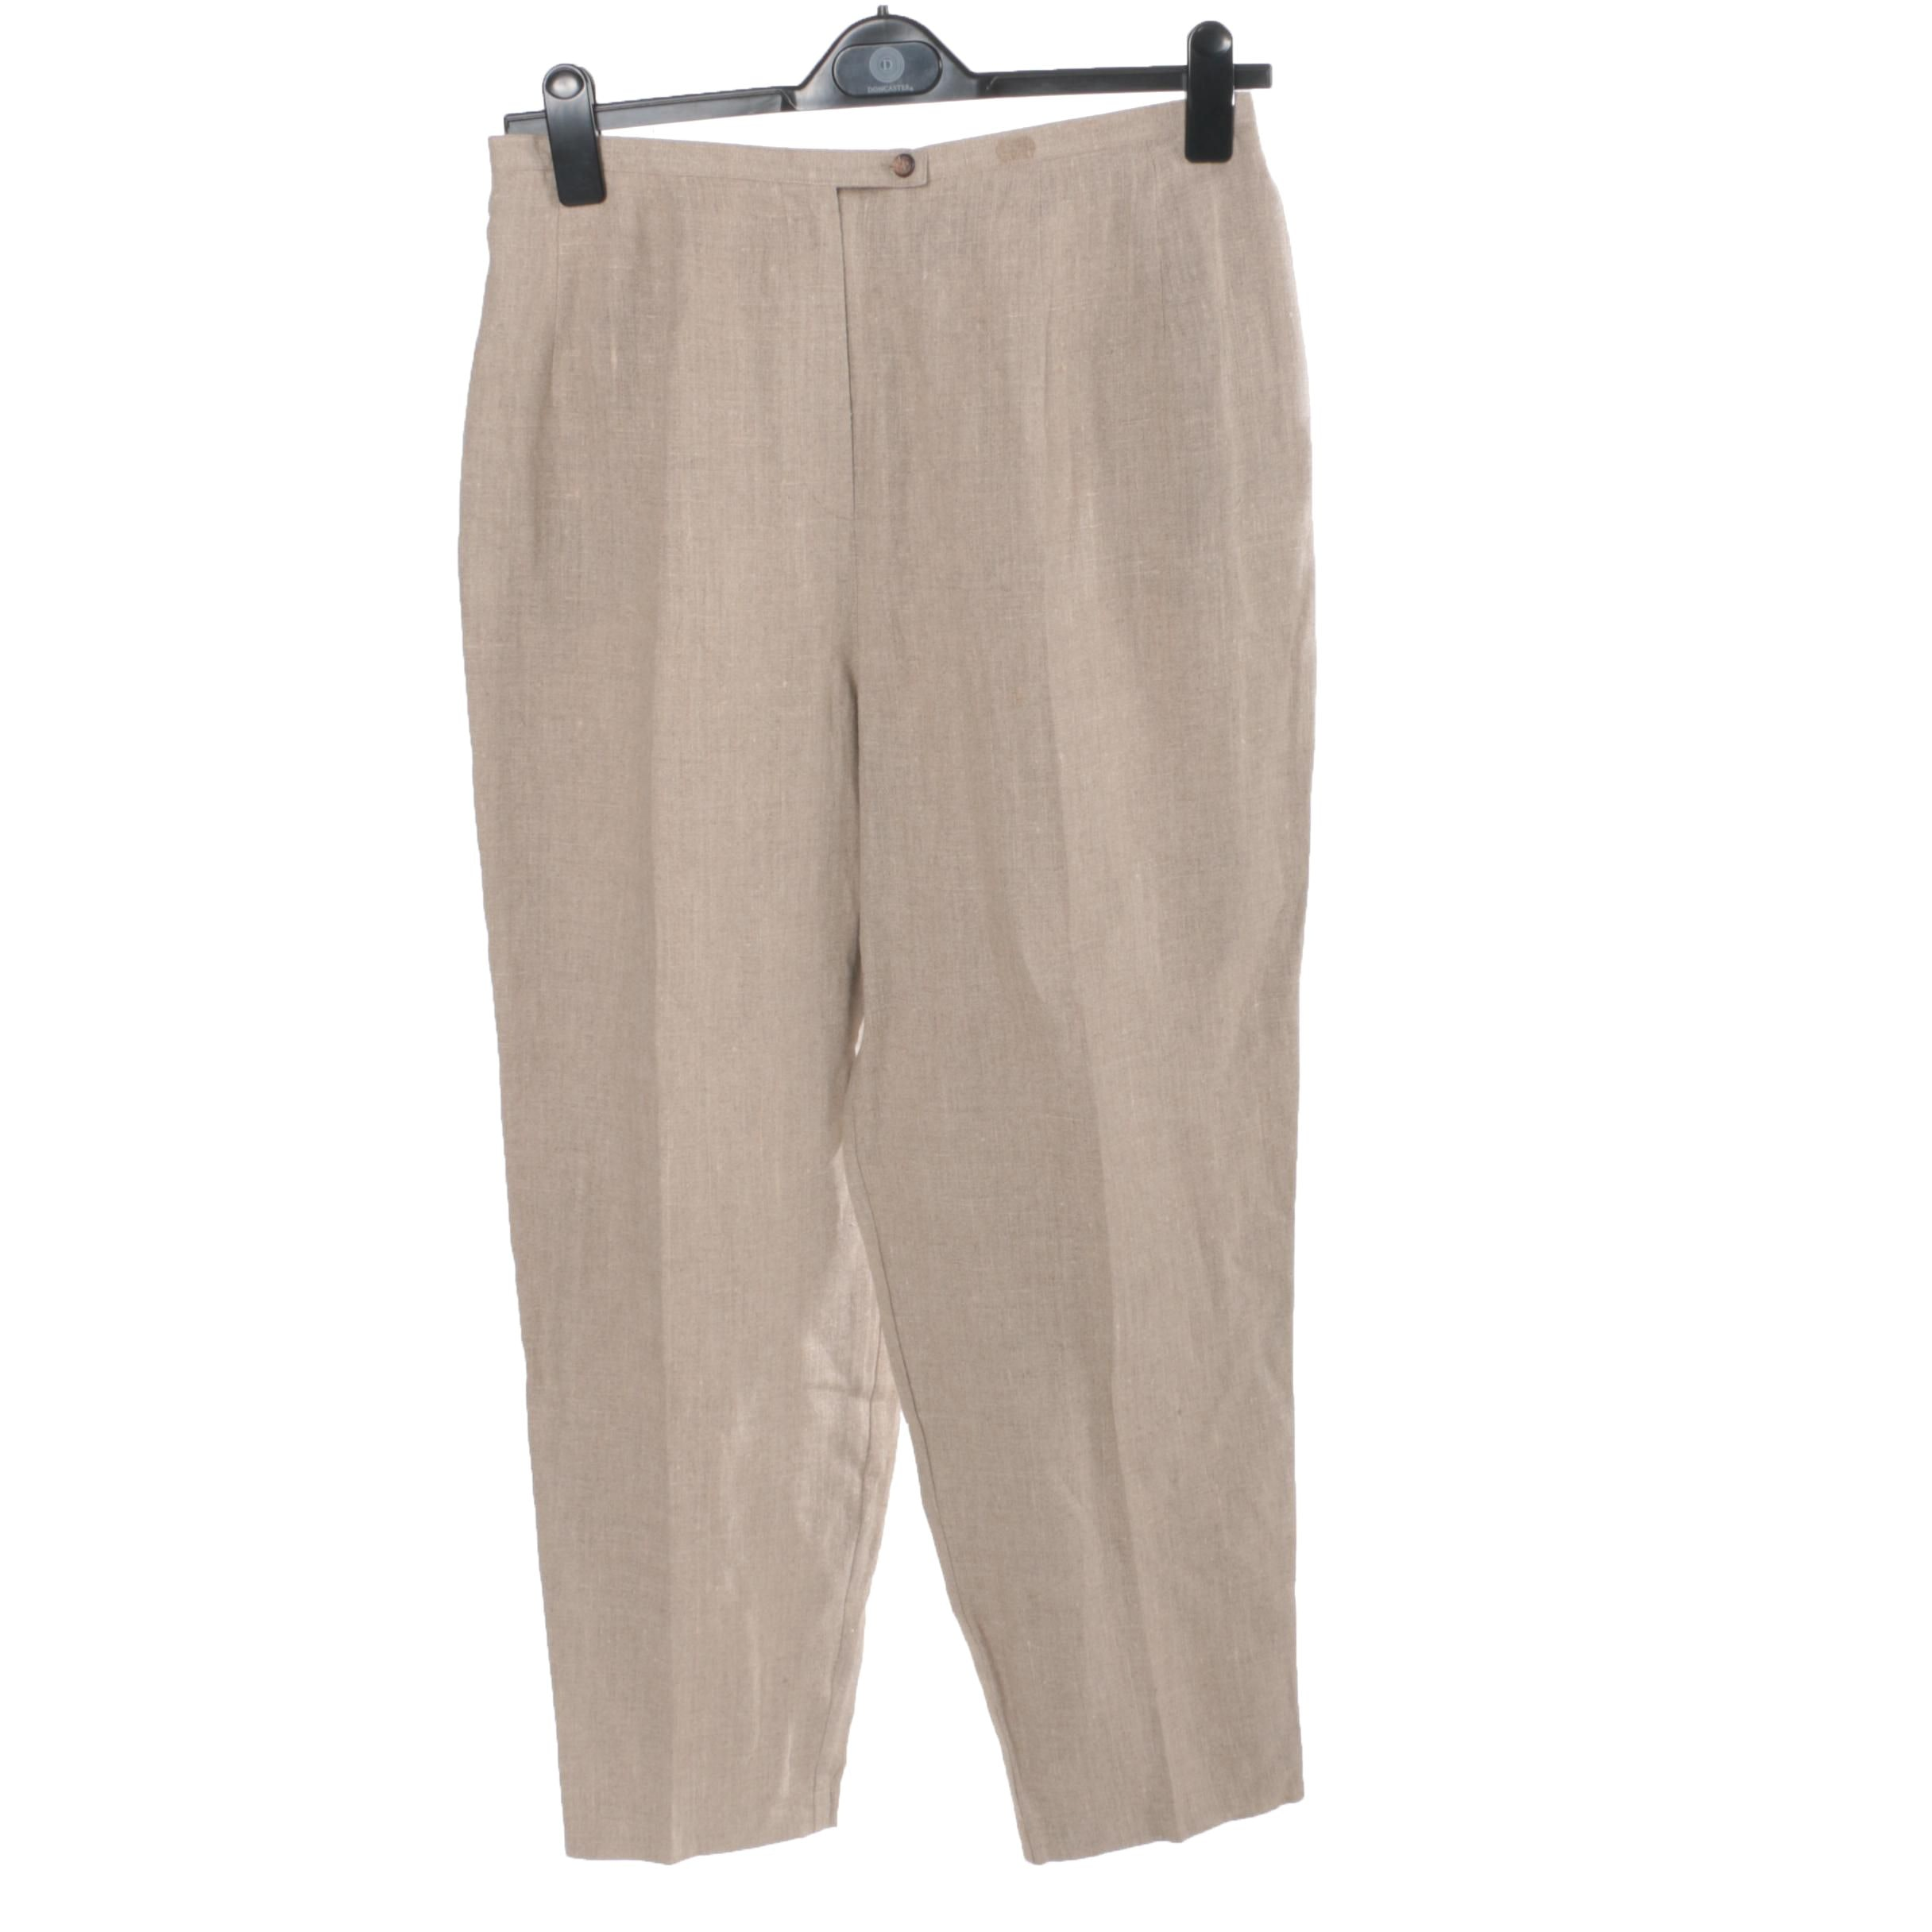 Women's Harvé Benard Linen Pants